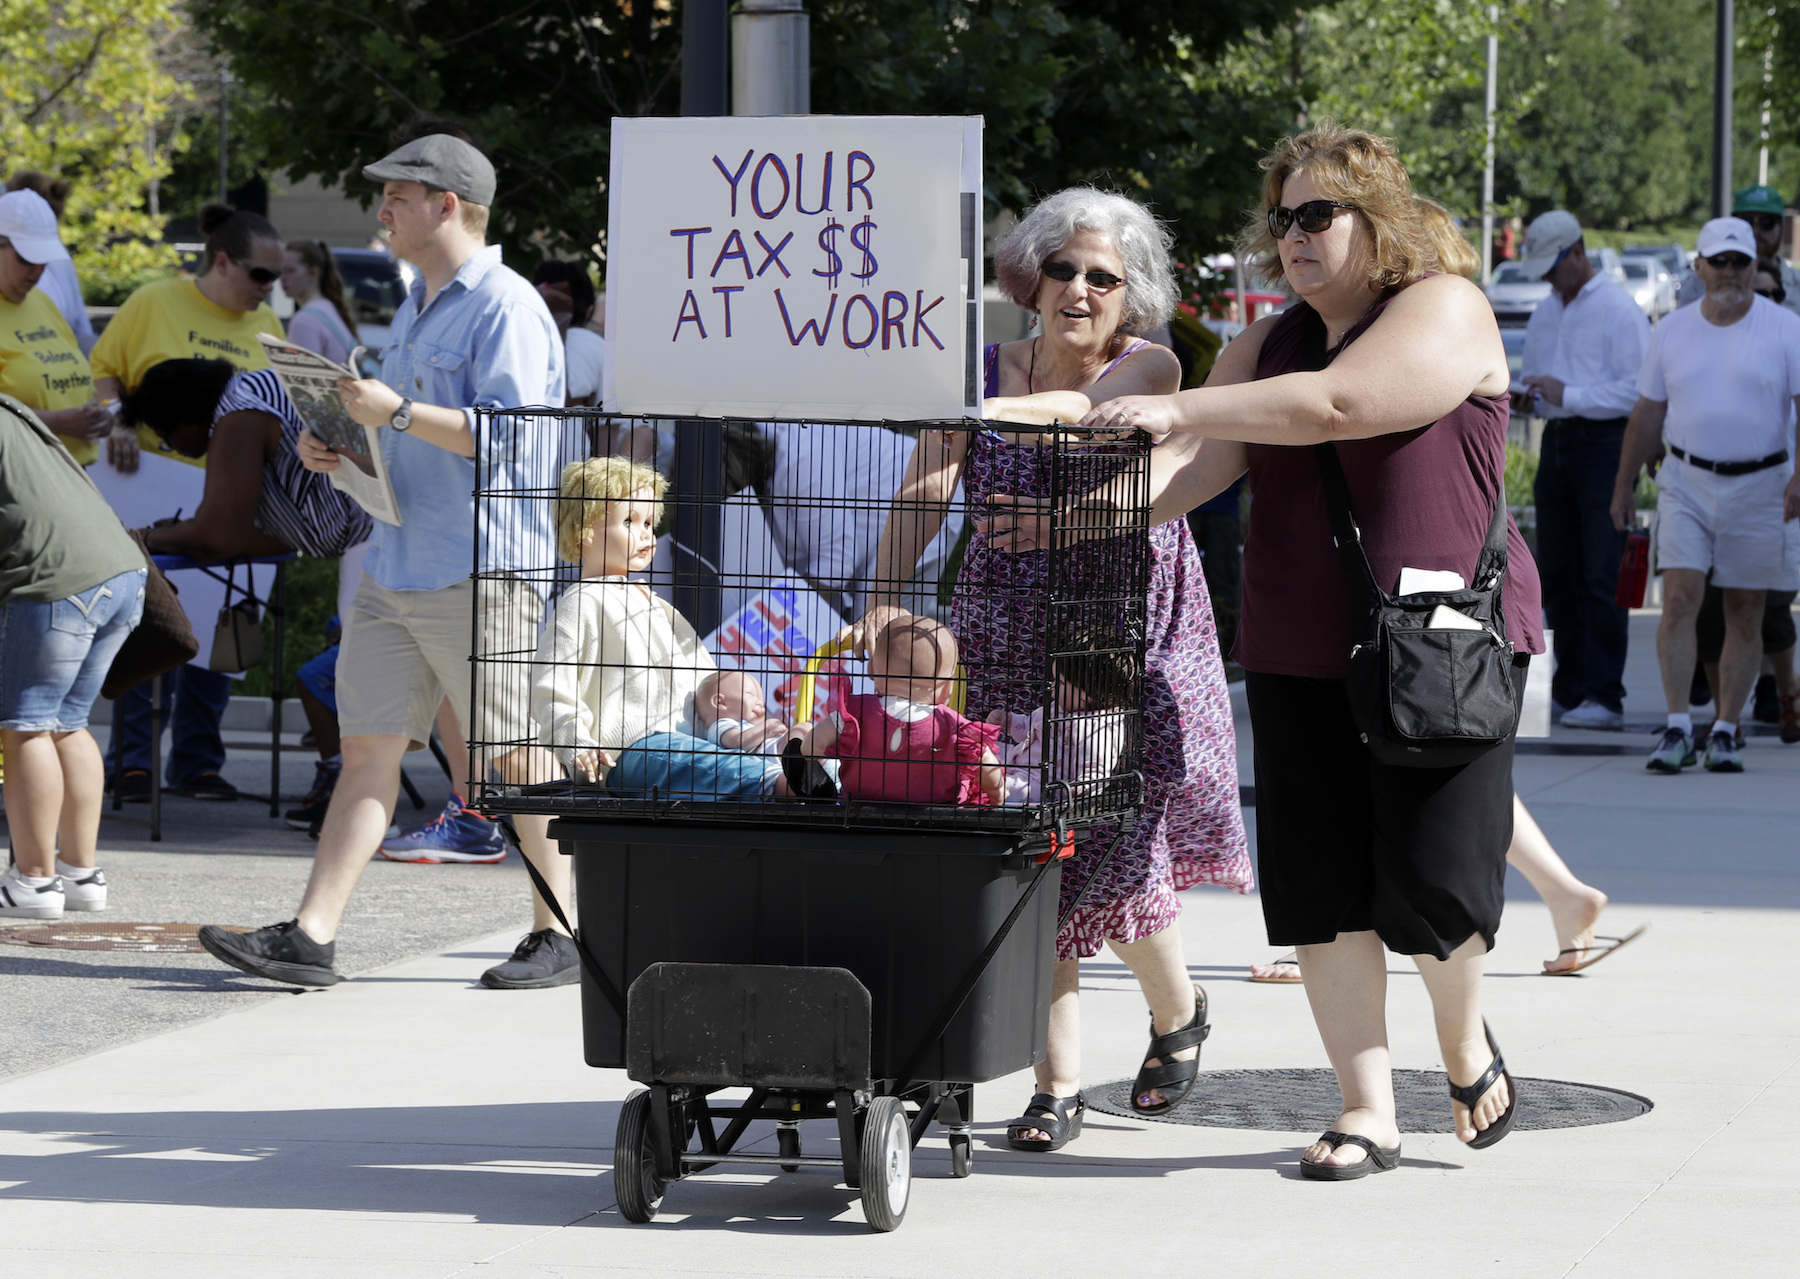 <div class='meta'><div class='origin-logo' data-origin='AP'></div><span class='caption-text' data-credit='AP Photo/Darron Cummings'>Deborah Langerman and Cara Hwang push a cart to a protest of the Trump administration's approach to illegal border crossings and separation of children from immigrant parents.</span></div>